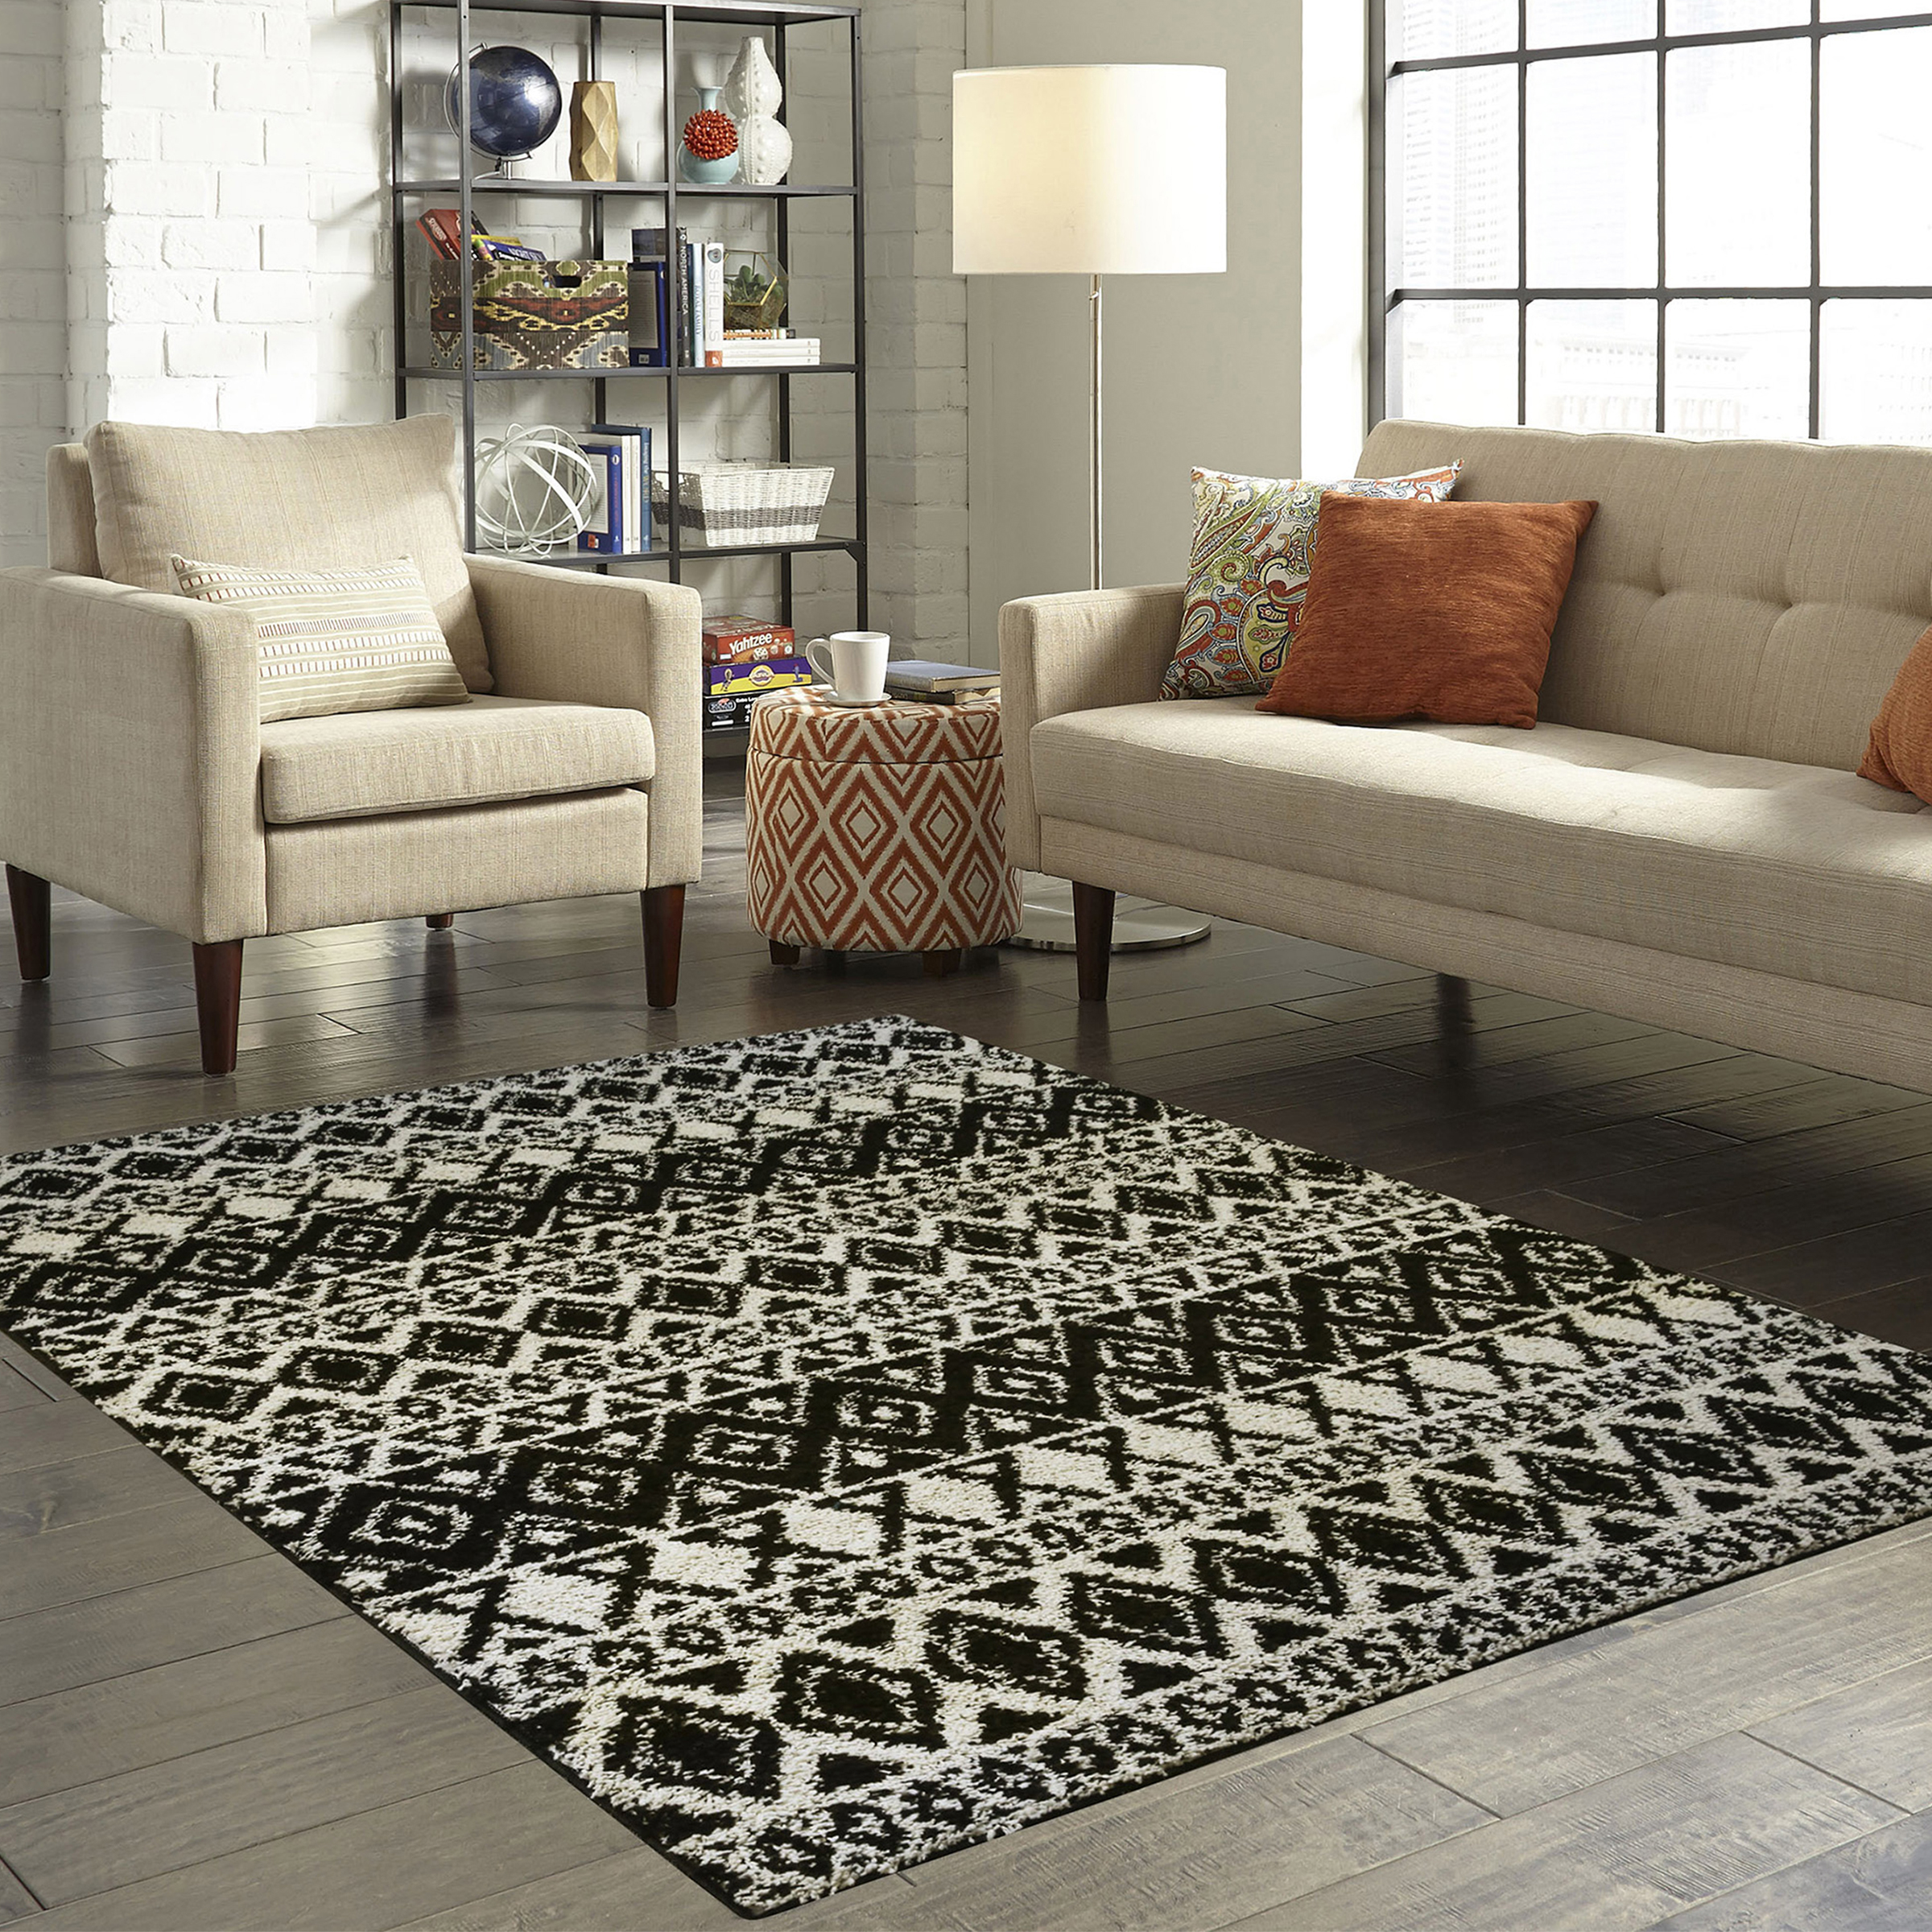 Mainstays Hayden Shag Area Rug and Runner Collection, Multiple Sizes